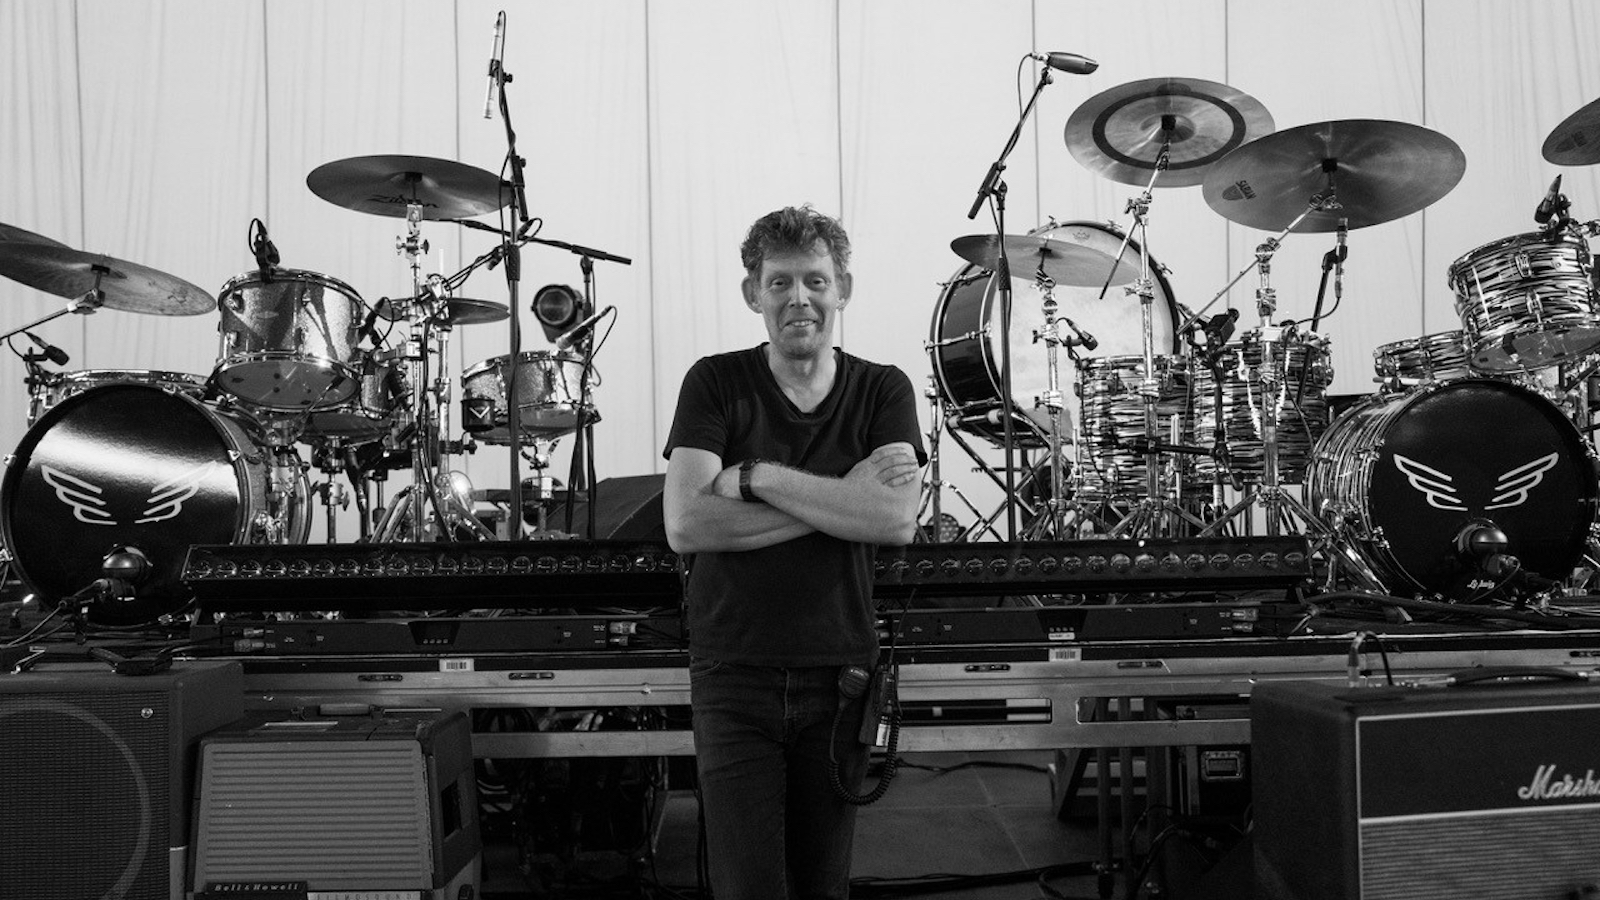 Busy as Folk: Wrangling Drums for Mumford & Sons